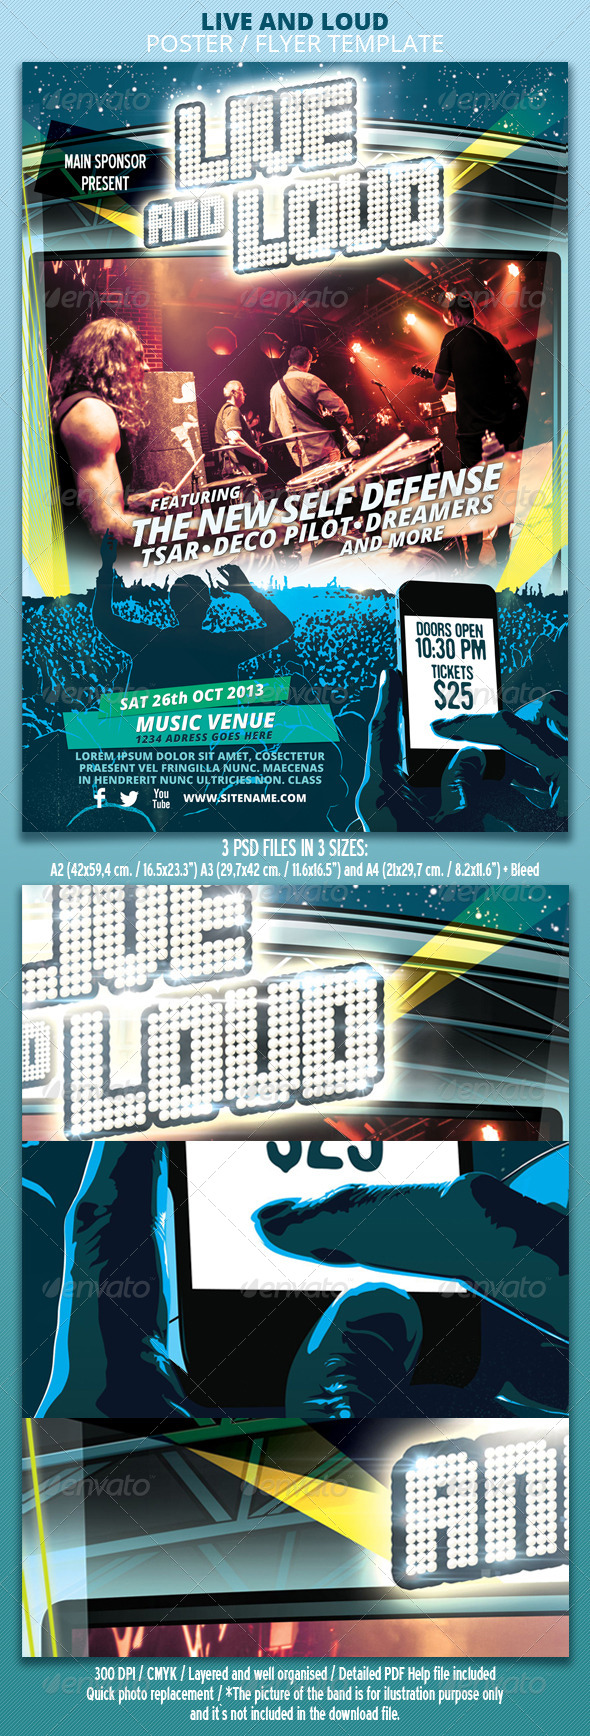 GraphicRiver Live and Loud Poster Flyer Template 5495762